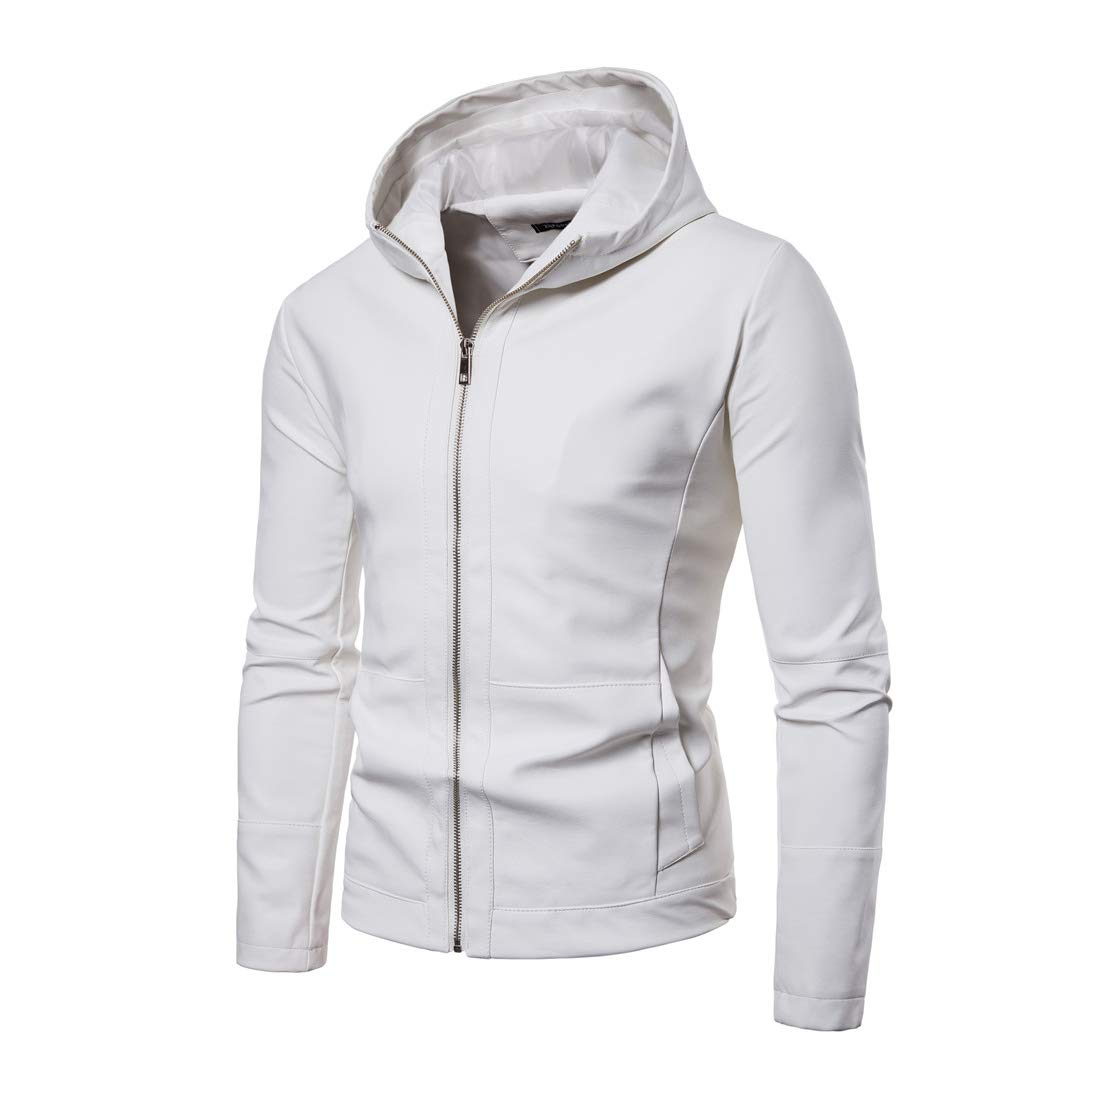 ENVMENST Men Hoodies Coat New Spring Autumn Men Hooded Jacket Men's Fashion Outdoorsman